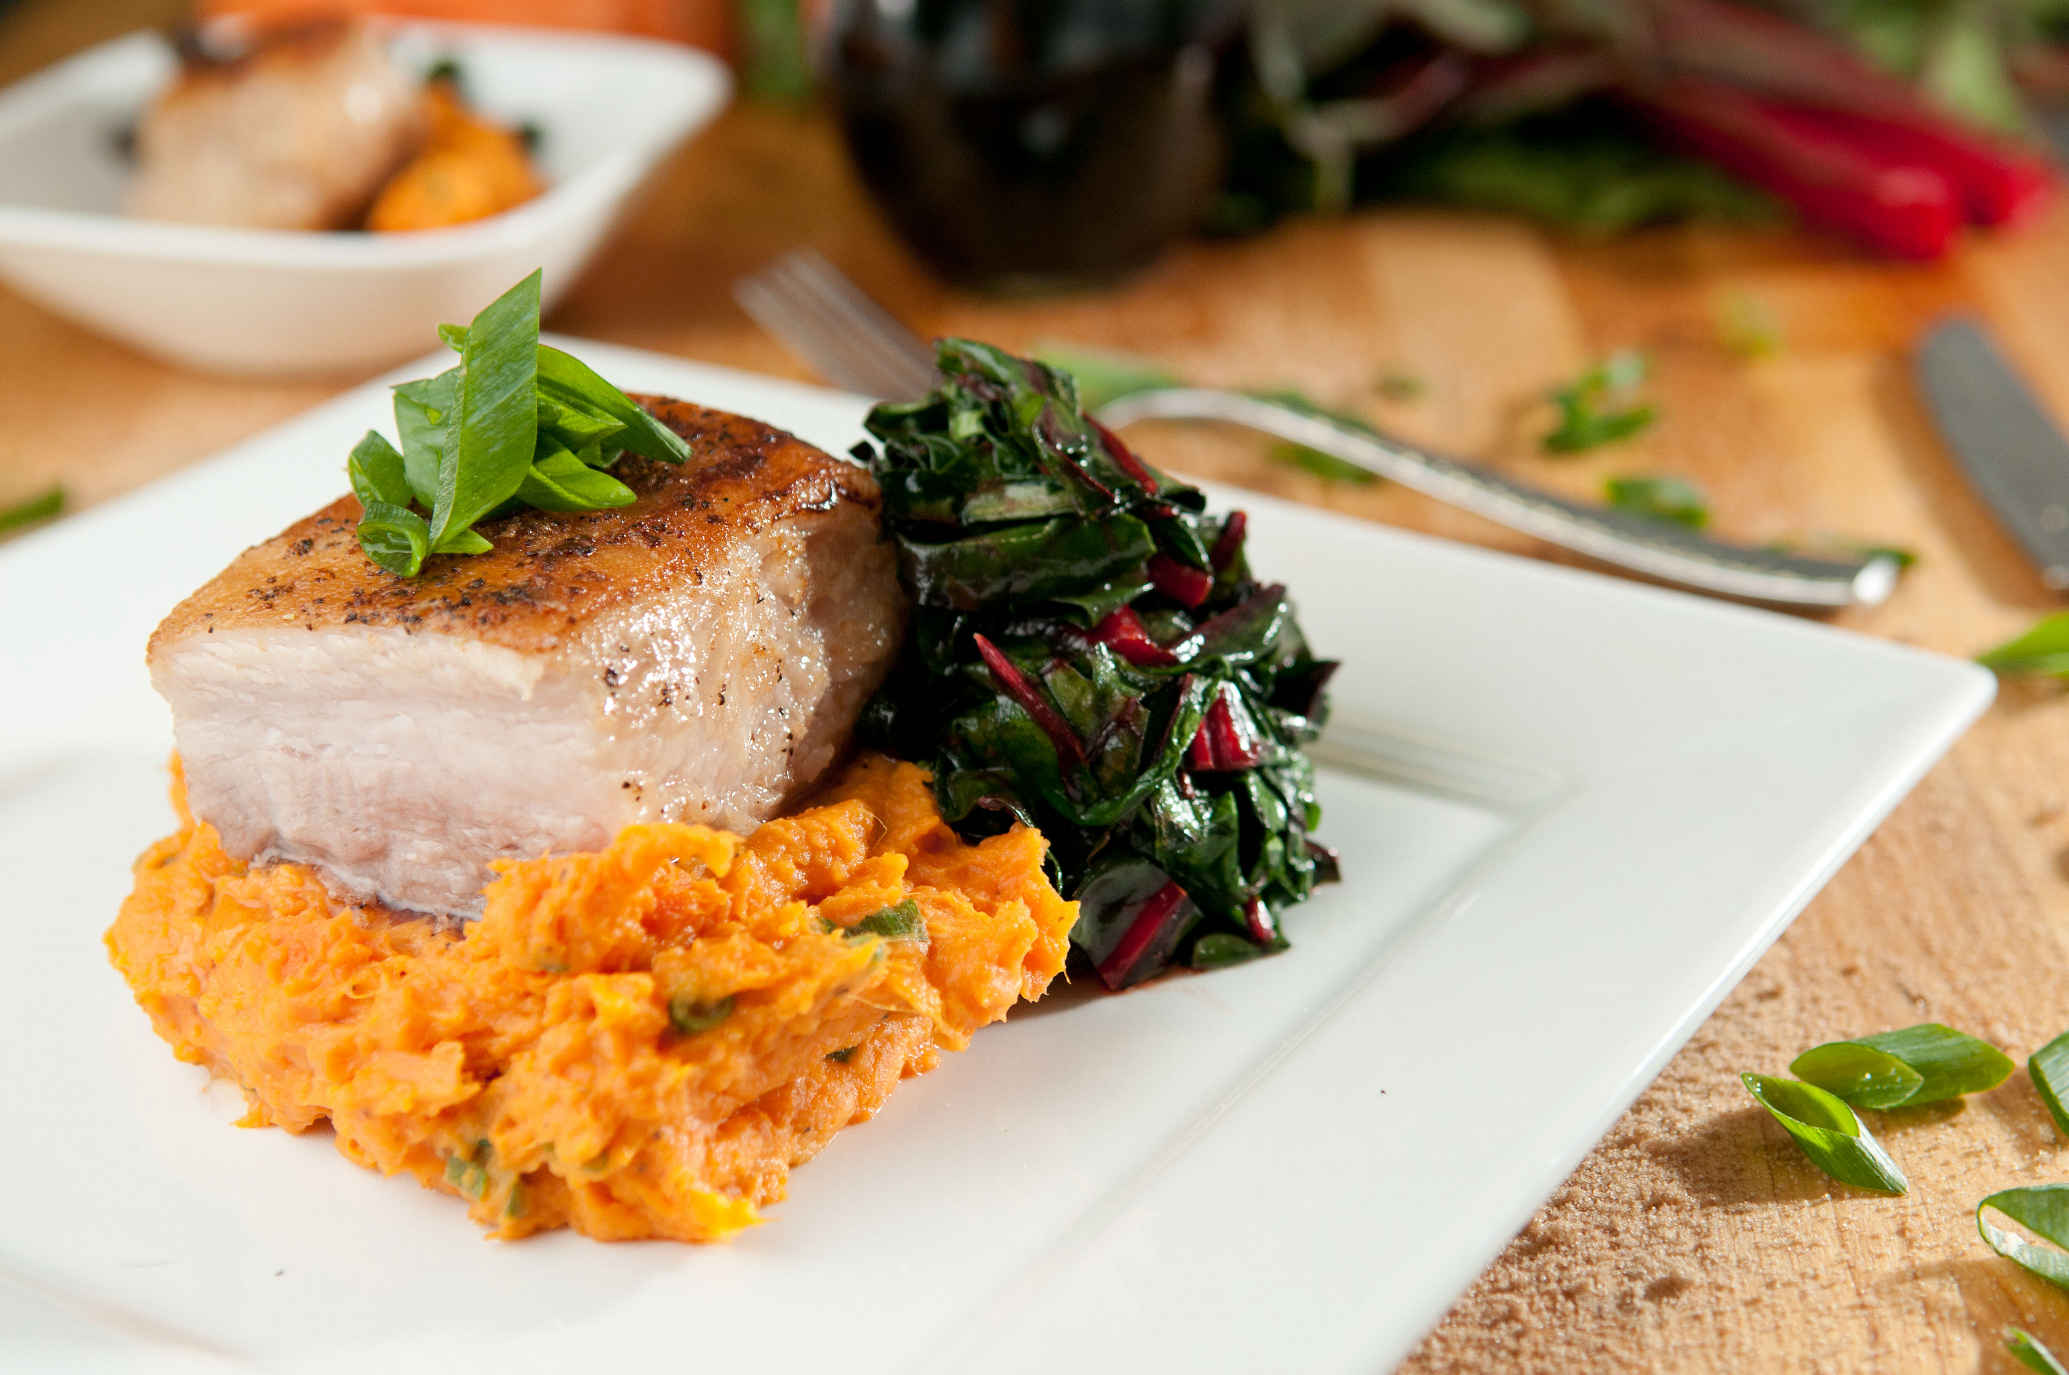 Pork_belly_with_whipped_yam_plated